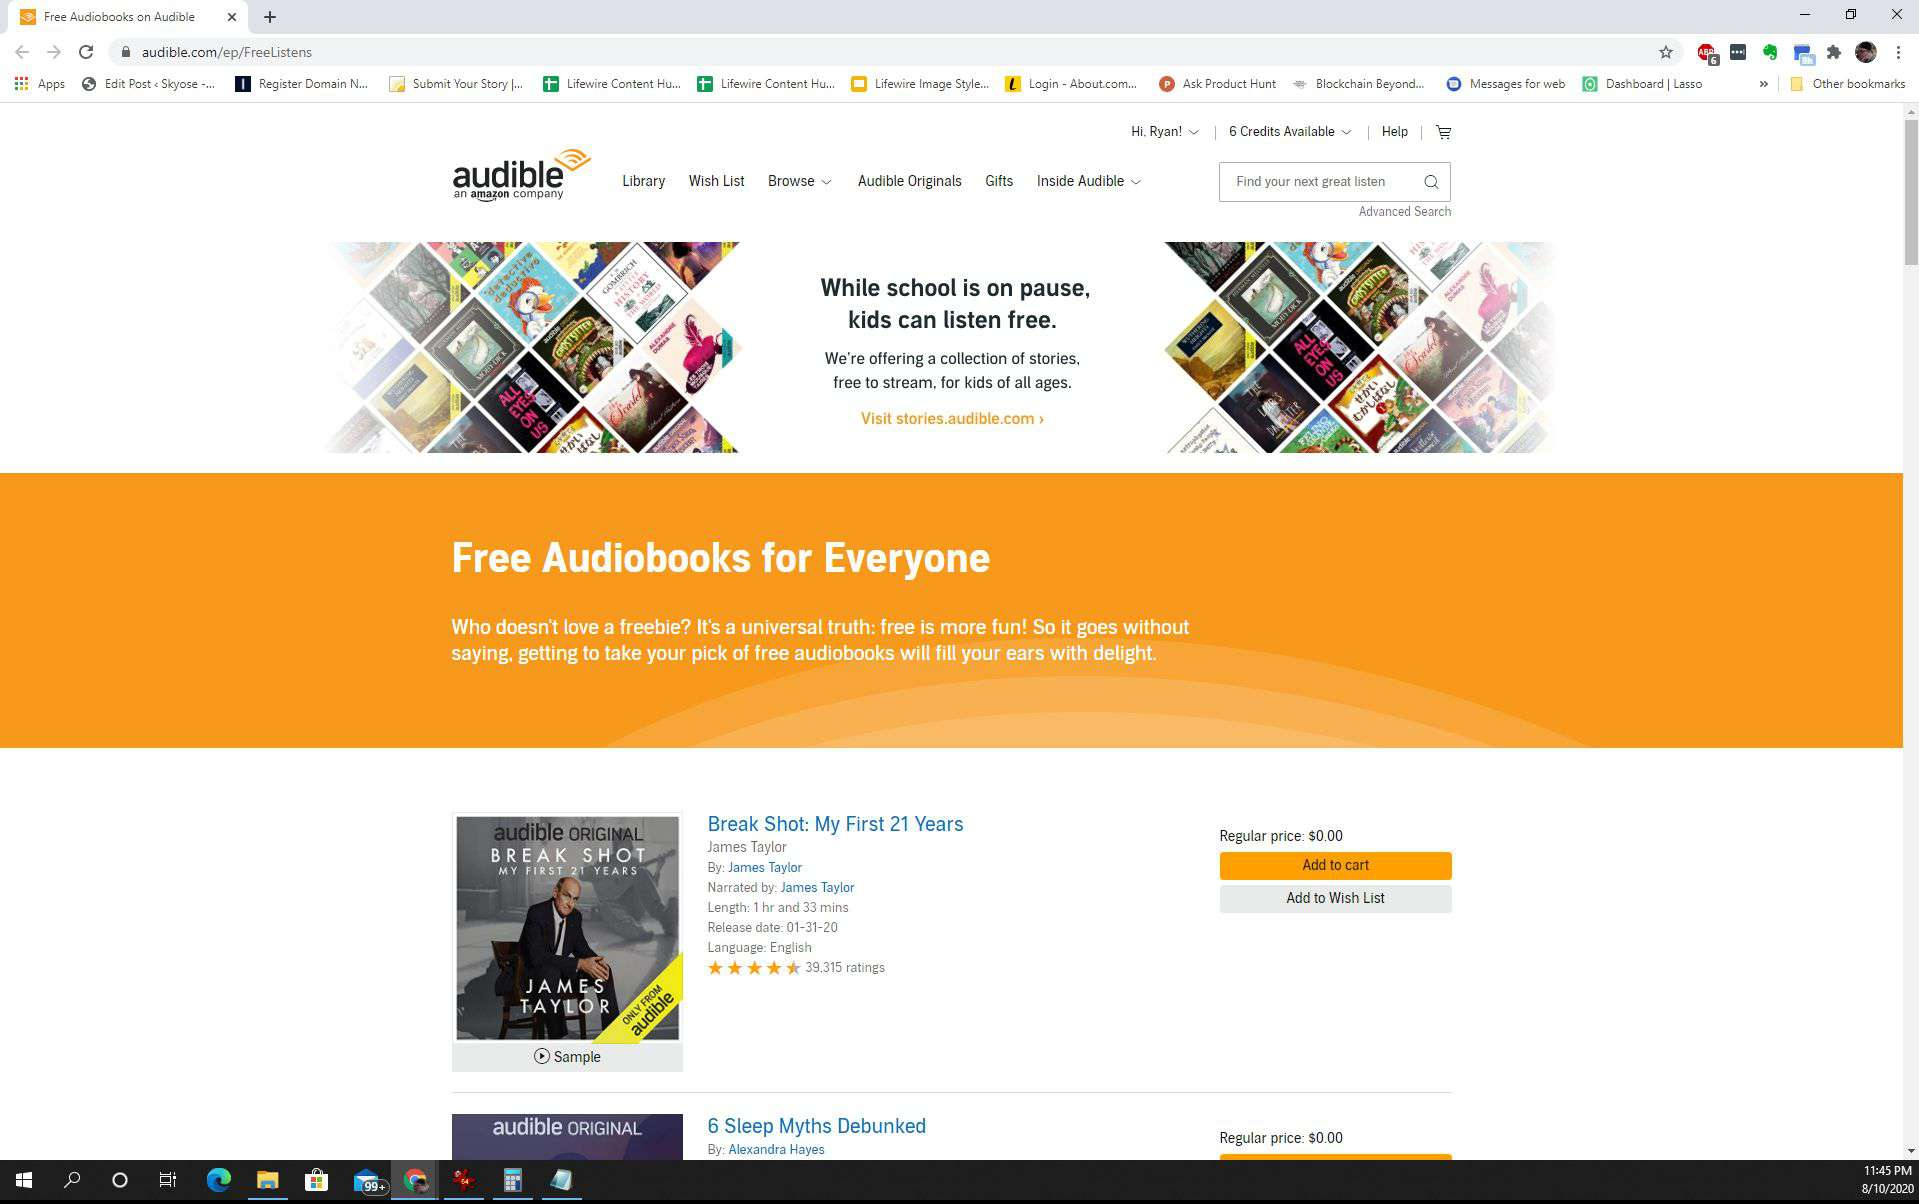 Screenshot of free Audible audiobooks page